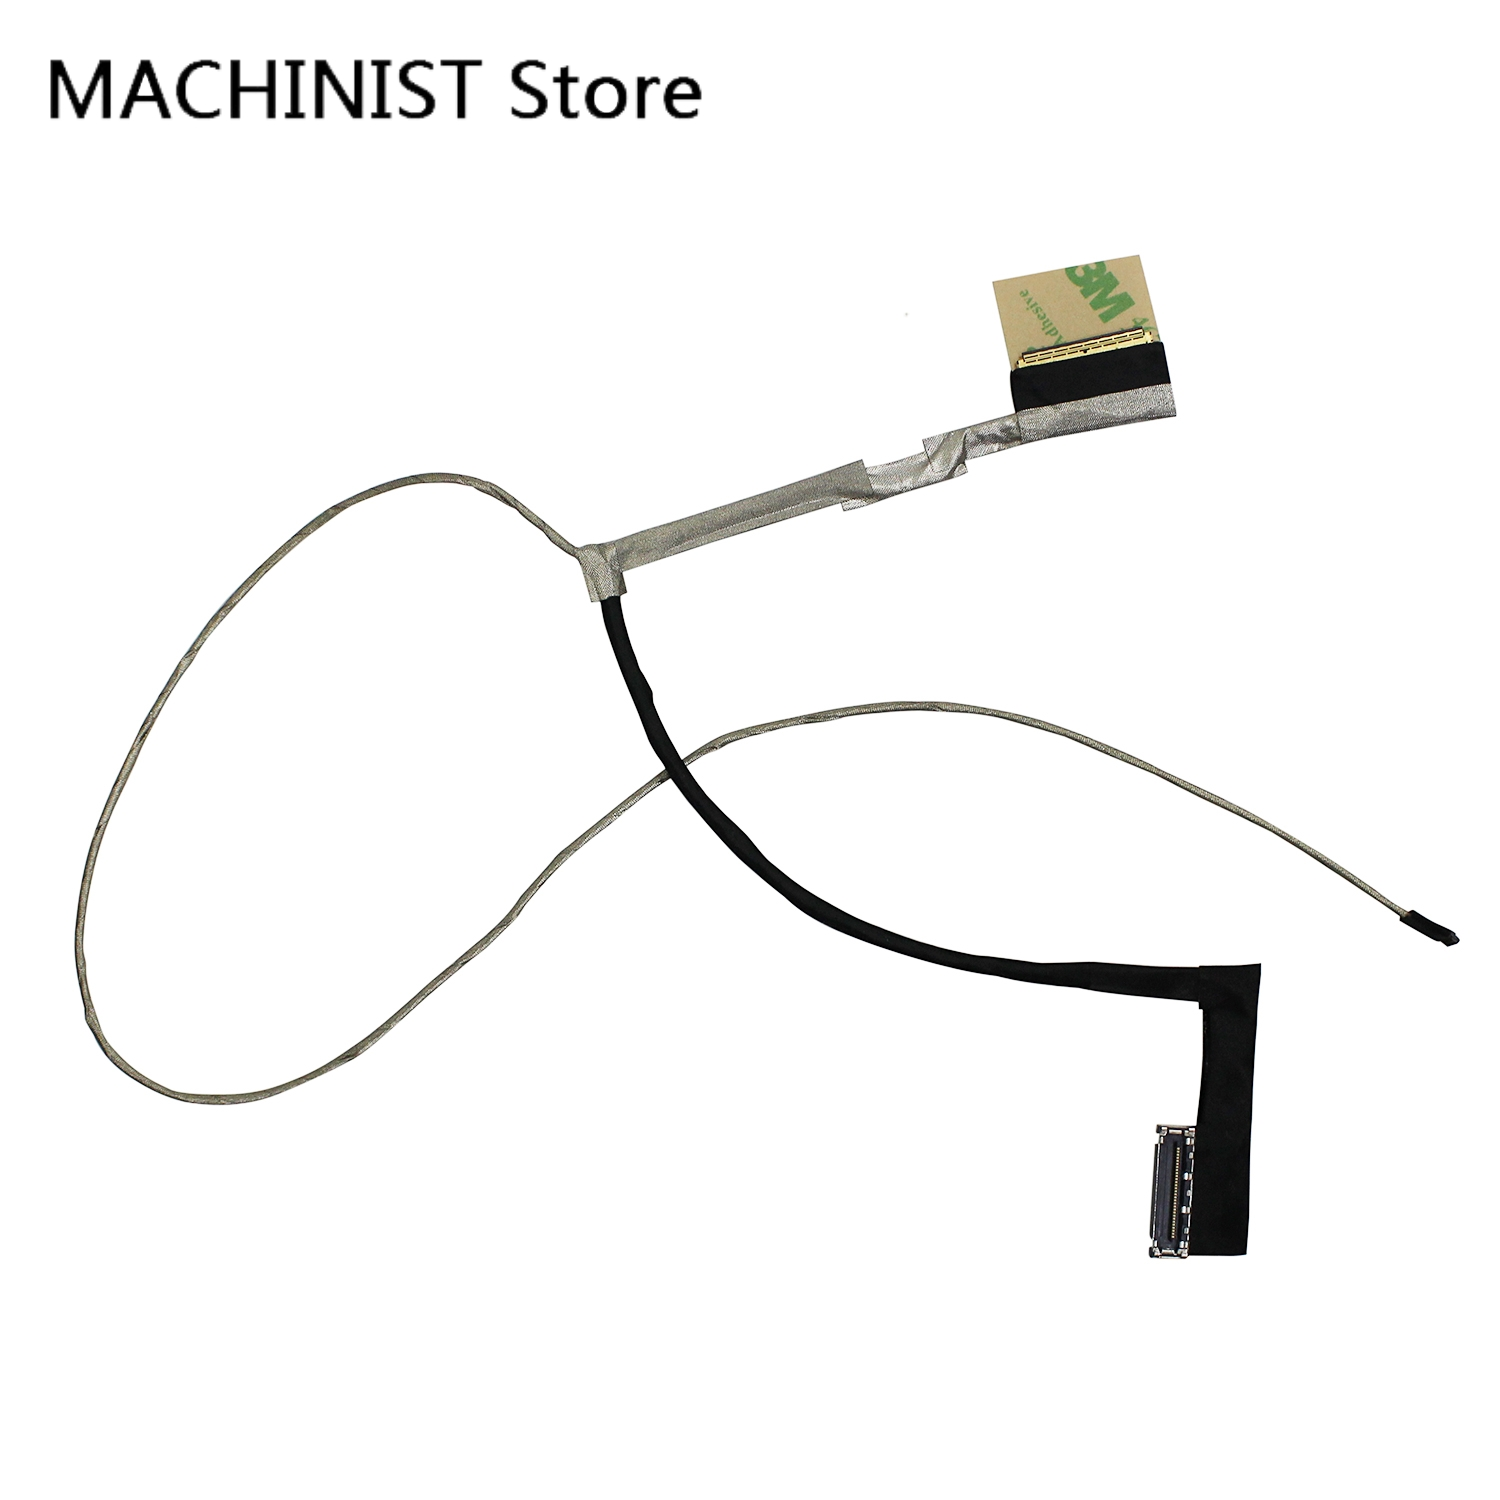 DC02001JH00 New Laptop Cable For HP Pavilion M6 M6-1000,Envy M6 PN: DC02001JH00 Repair Notebook LCD LVDS CABLE